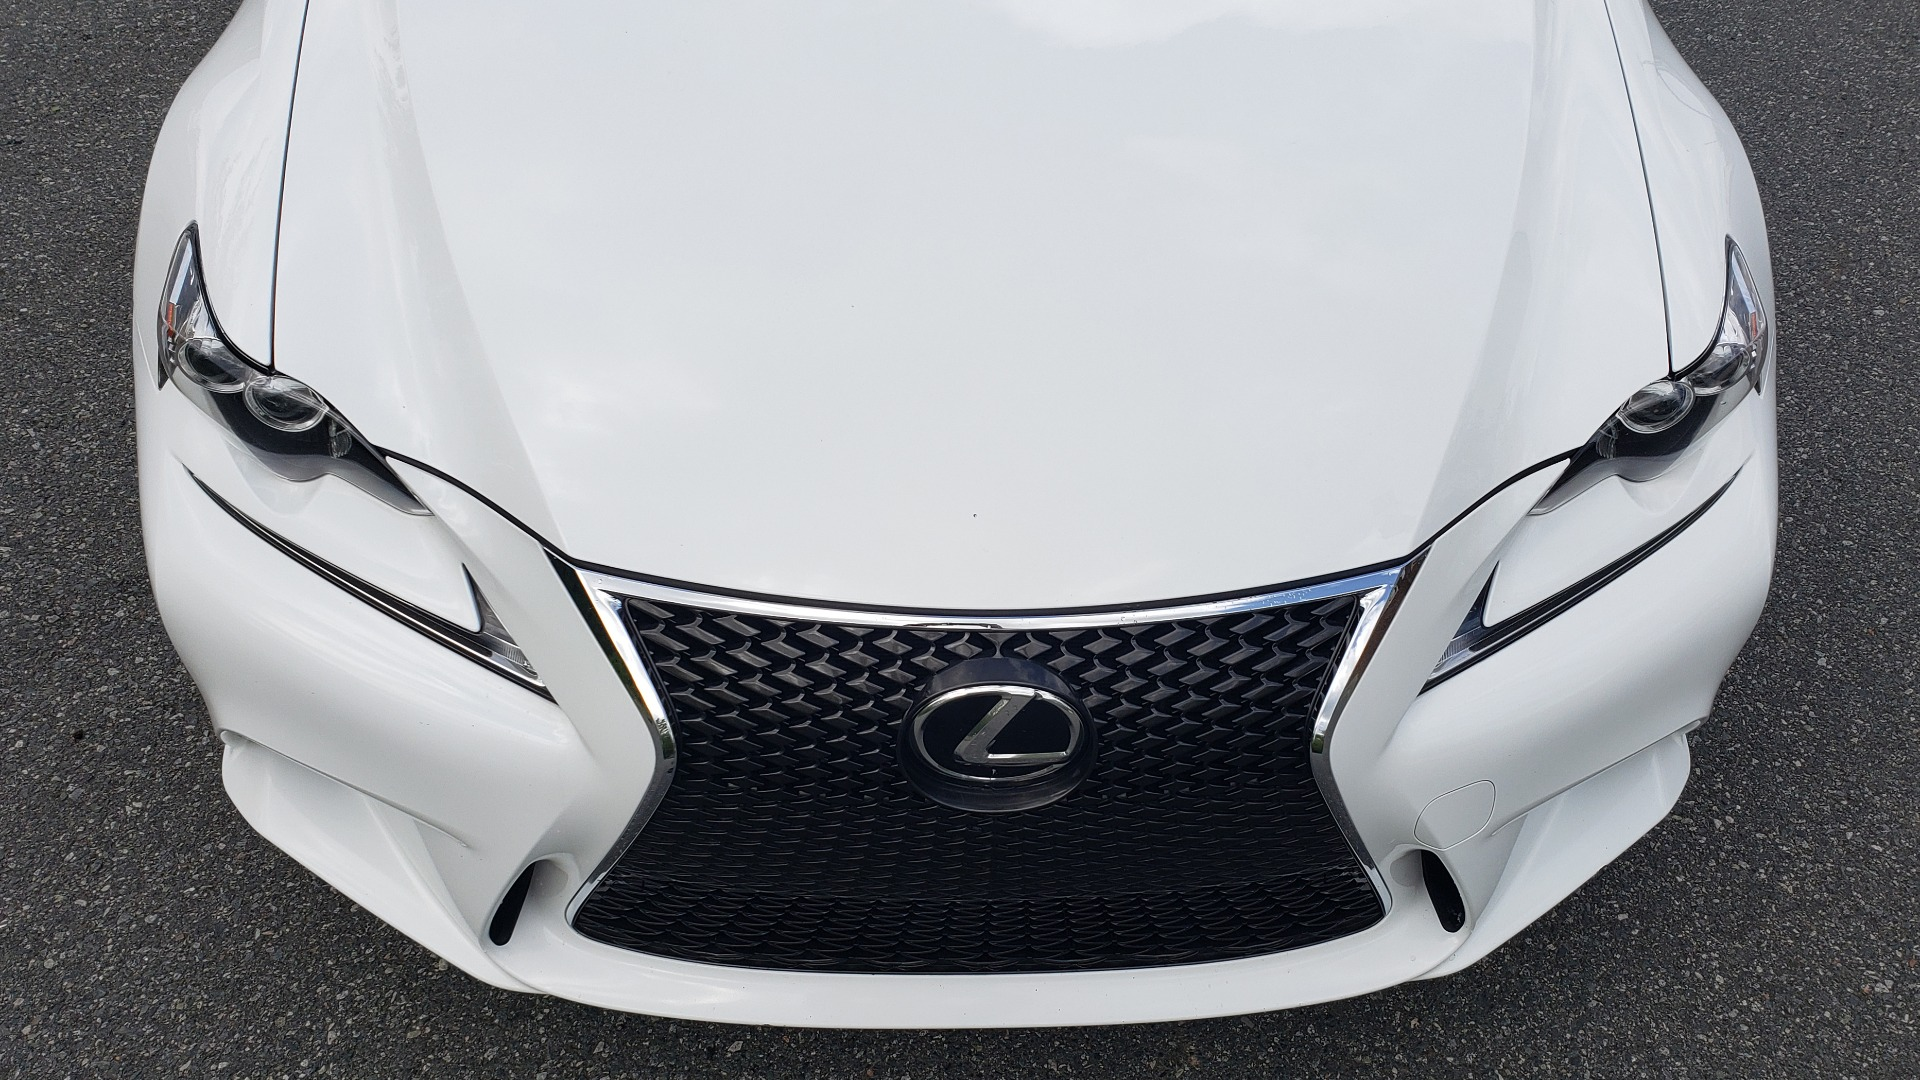 Used 2016 Lexus IS 350 F-SPORT / NAV / BSM / SUNROOF / REARVIEW / VENT SEATS for sale Sold at Formula Imports in Charlotte NC 28227 20